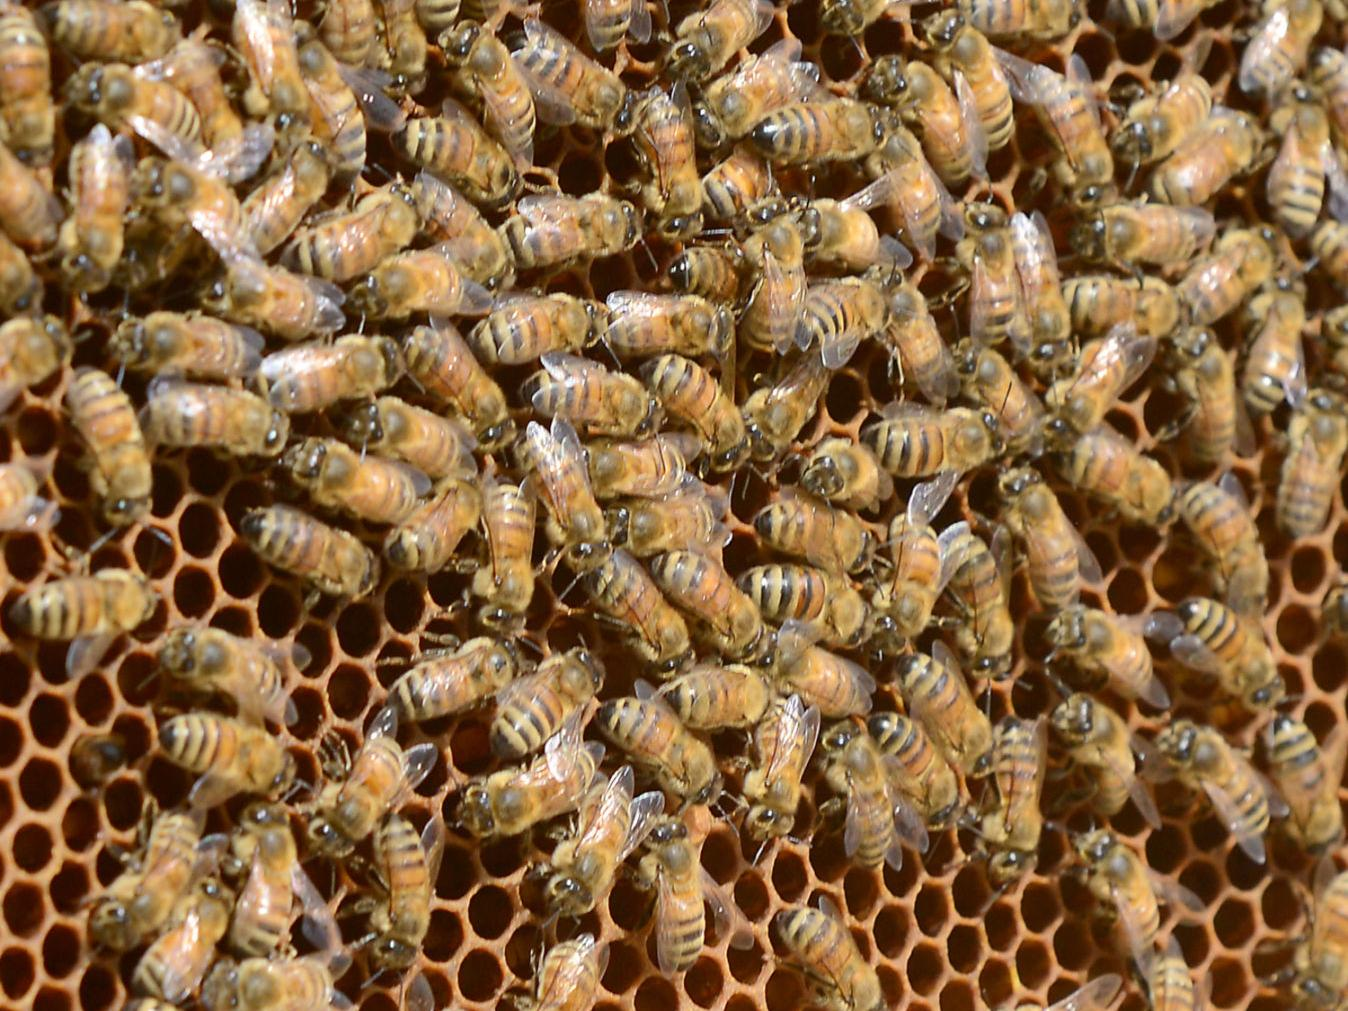 Retired Electrician Owns One Of Largest Bee Farms In Southwest Va Latest Headlines Heraldcourier Com